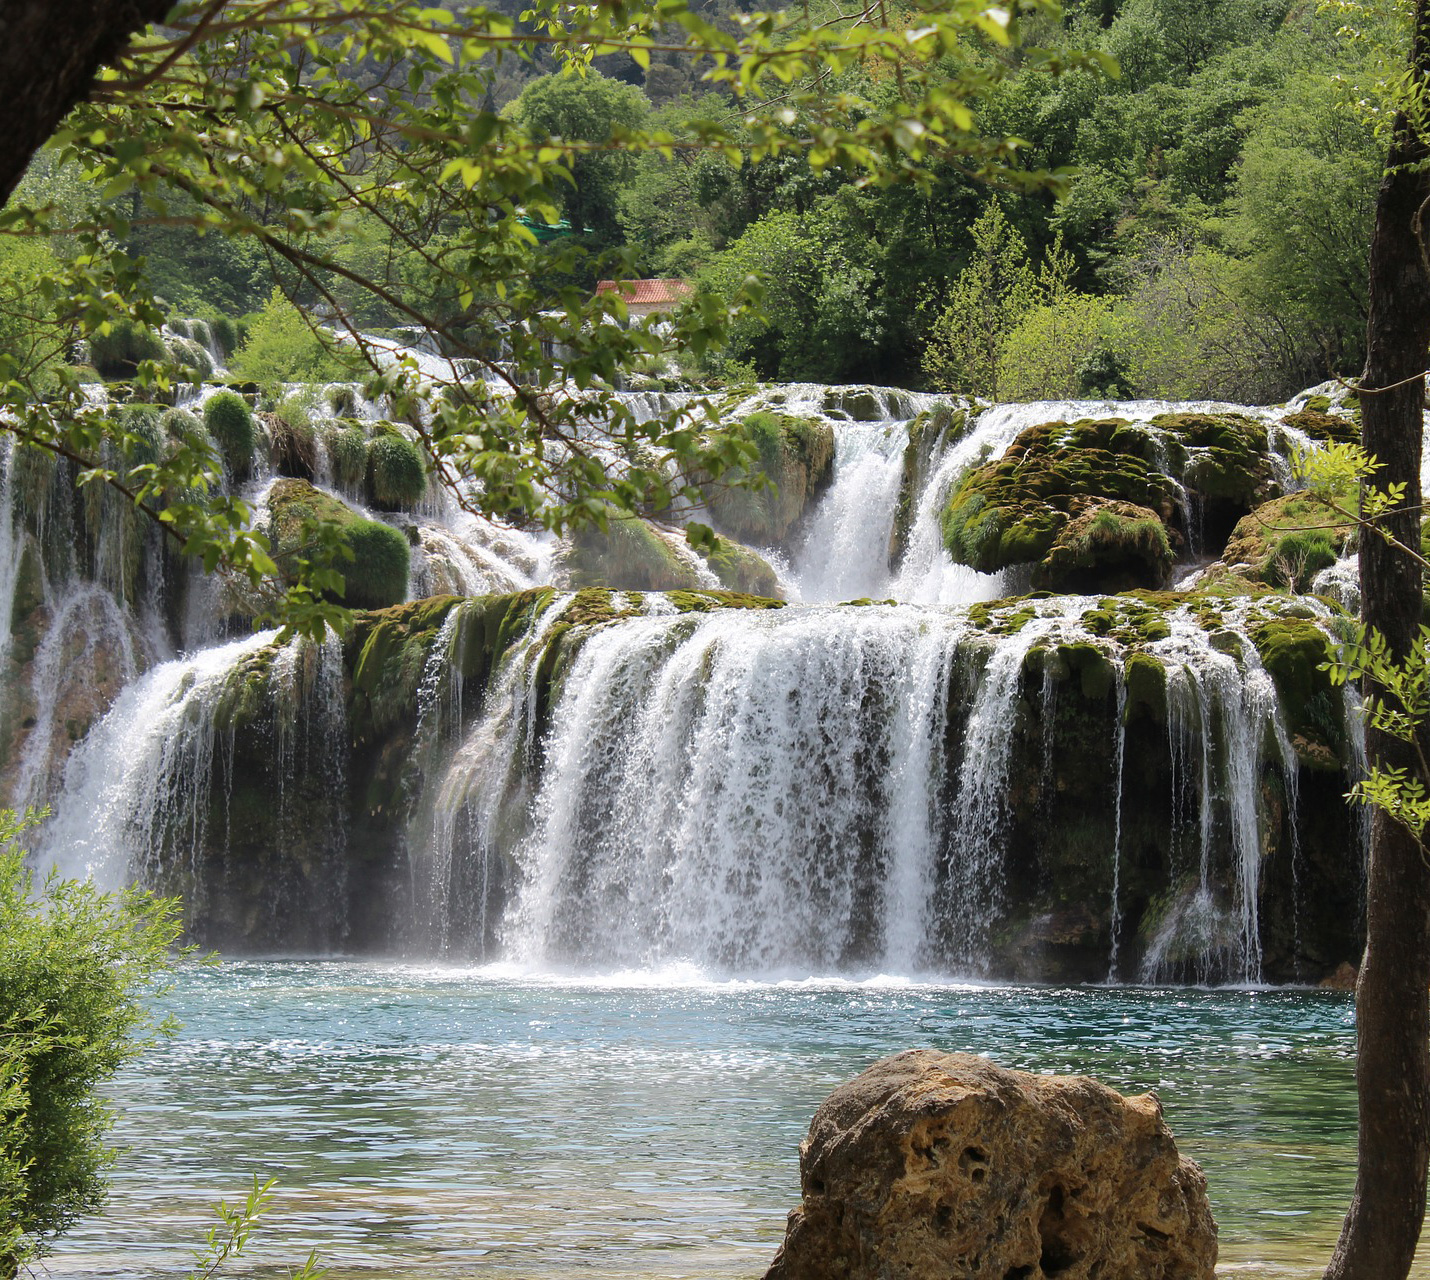 Women's Travel Club Croatia Tour - Krka Waterfalls